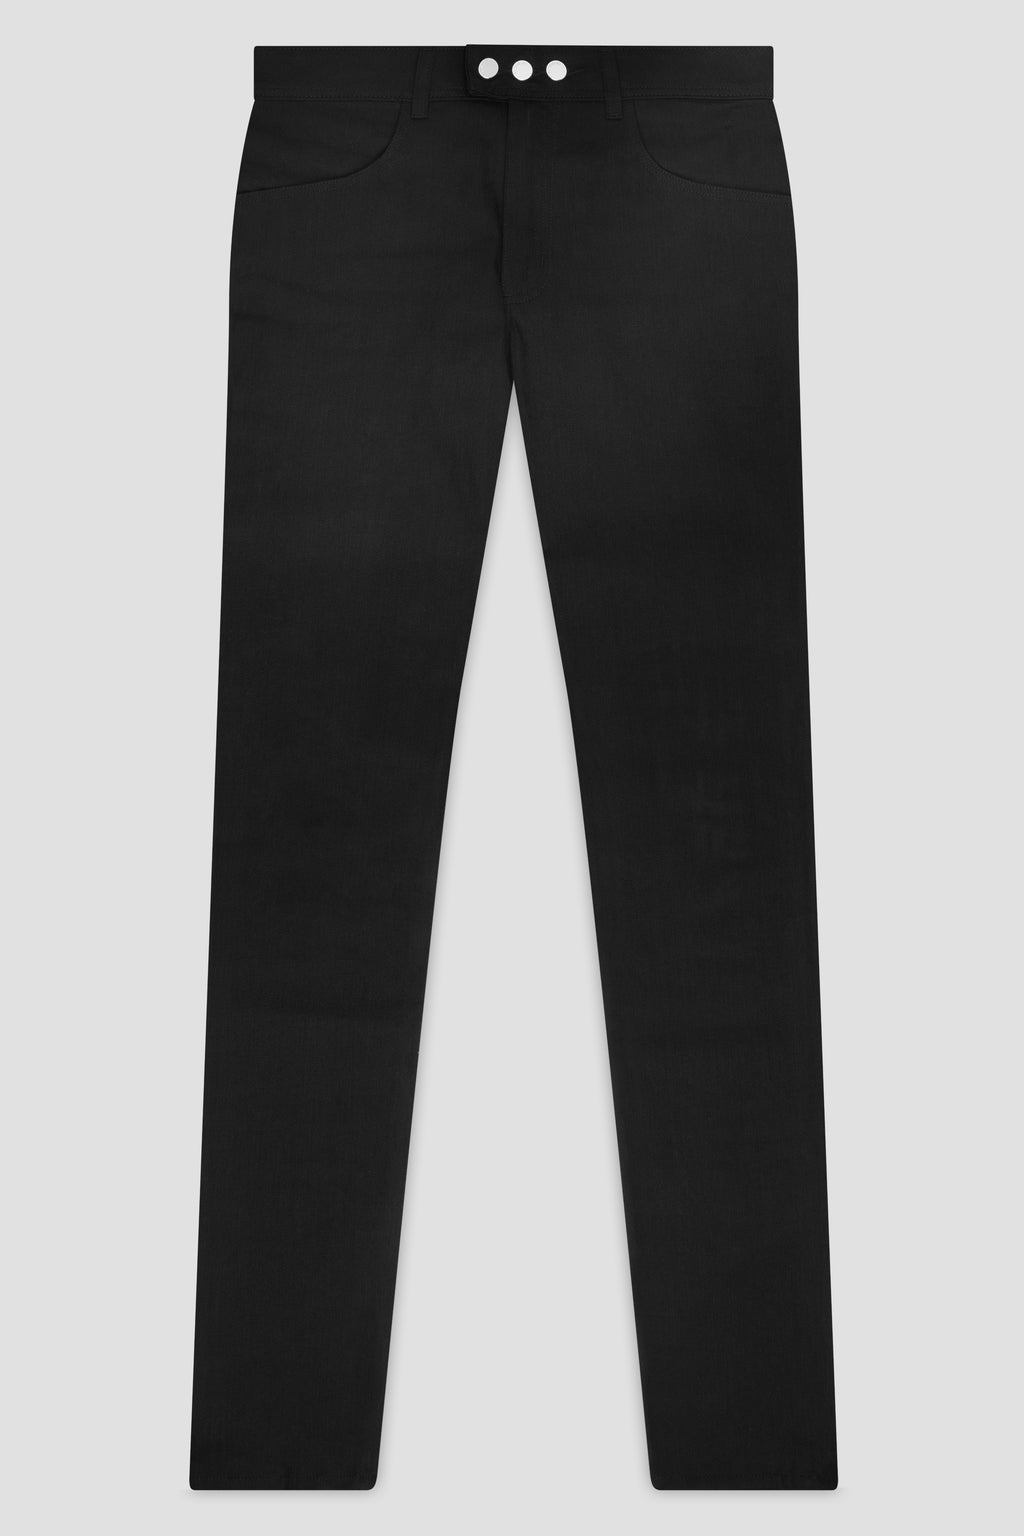 Mens black luxury jeans made in melbourne